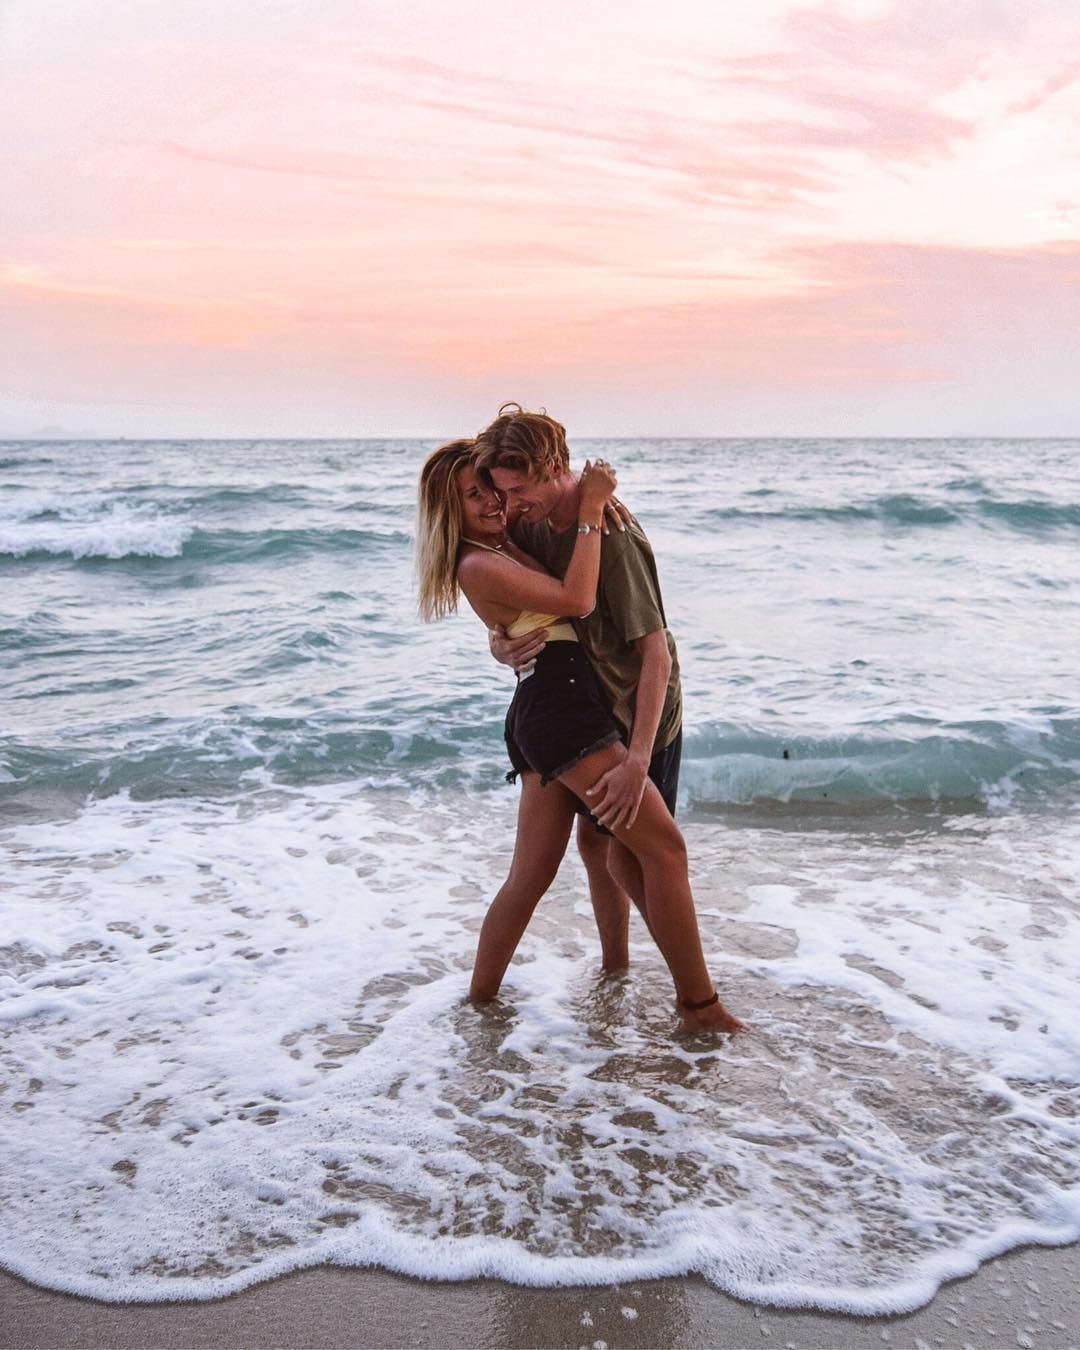 """, Charlie & Lauren on Instagram: """"One of the most important lessons in life is to be true to yourself. 🤙🏼 Is what you're doing right now making you happy? If it's not then…"""", Travel Couple, Travel Couple"""